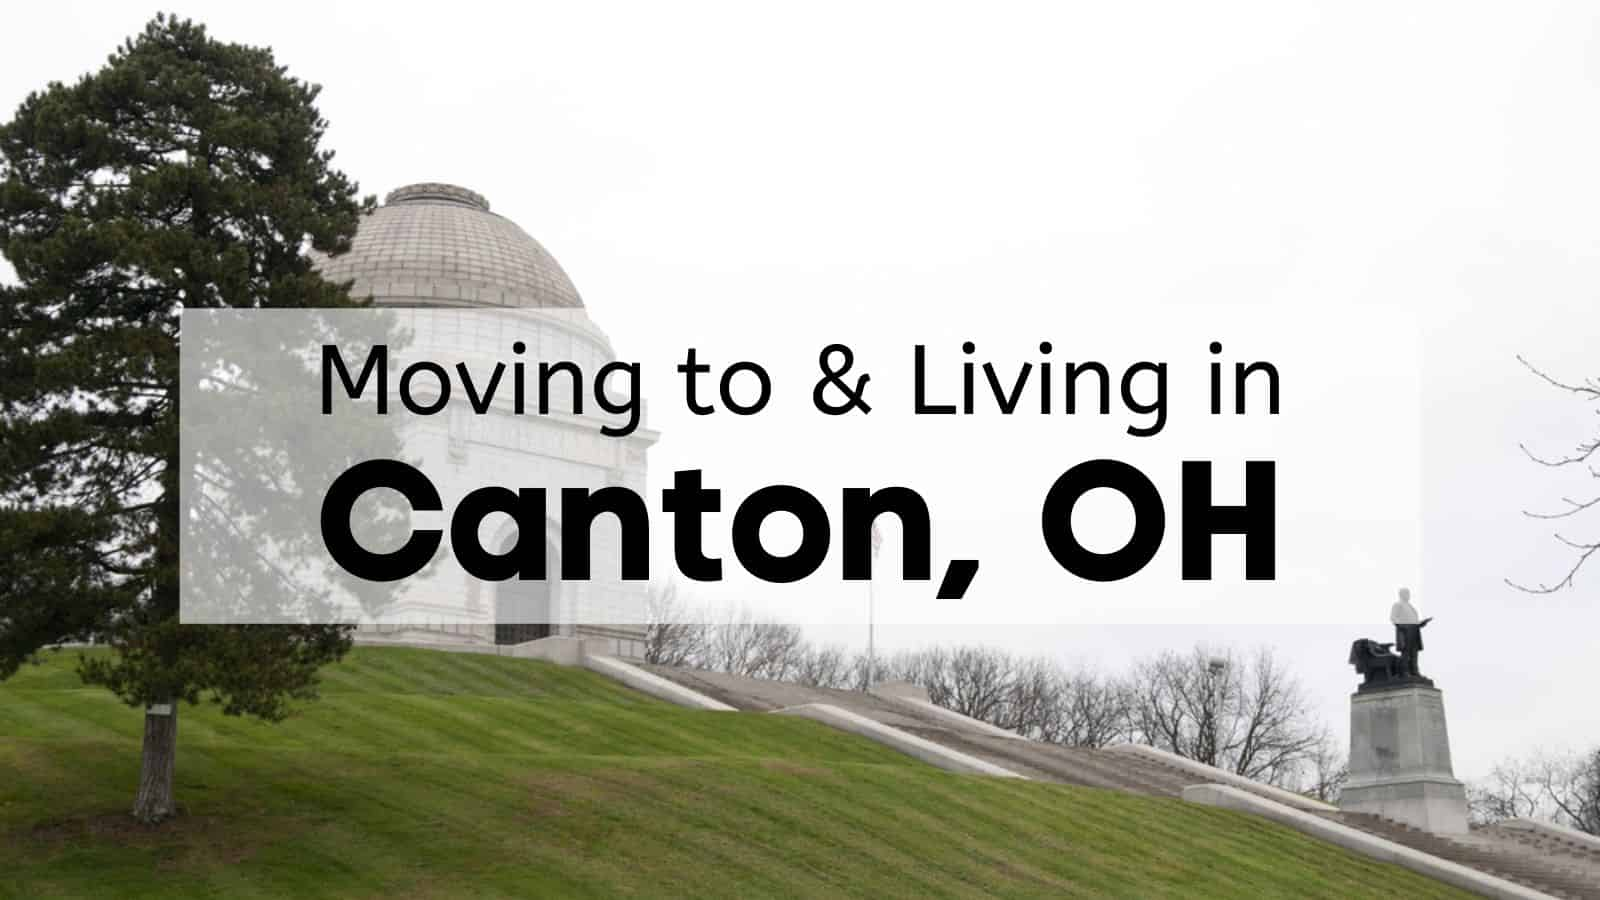 Moving to & Living in Canton, OH